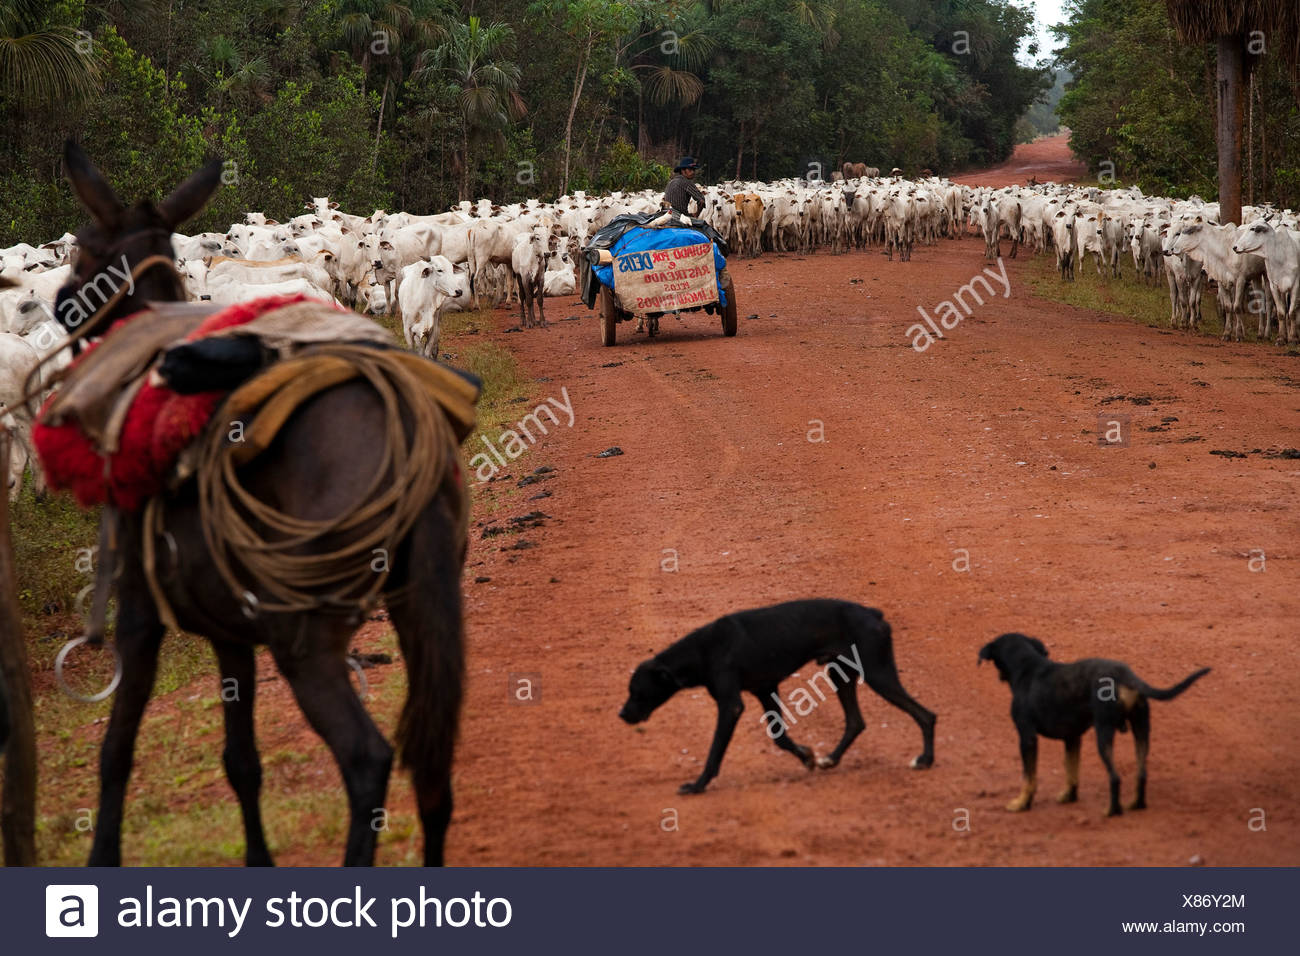 Herd of cattle, BR-163 road ( Cuiabá - Santarém road ) at South Para State, Amazon, Brazil. Stock Photo